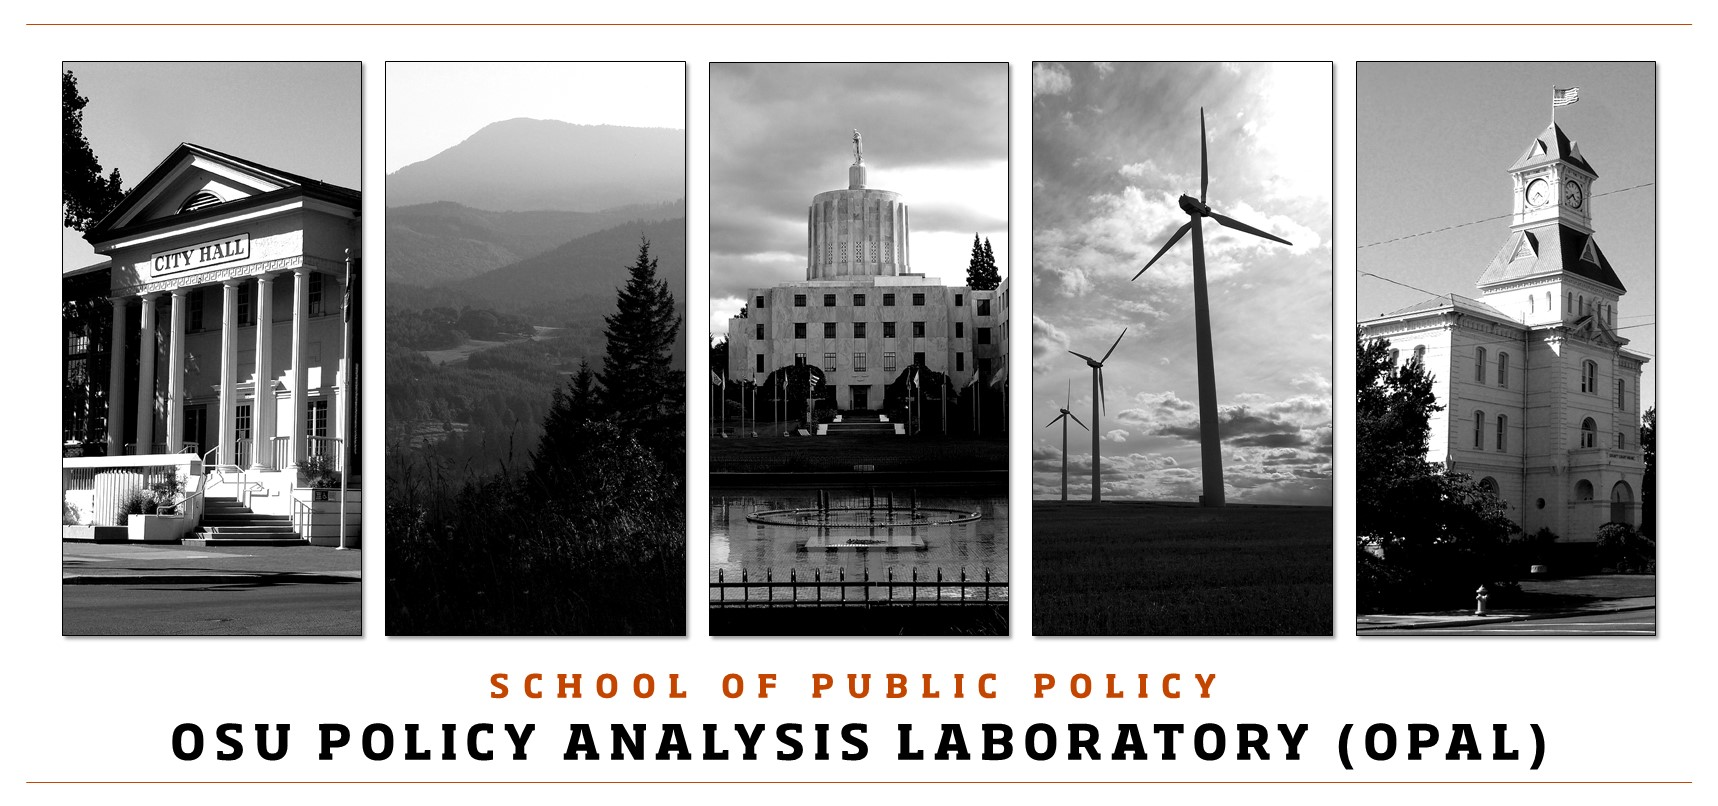 School of Public Policy Oregon Policy Analysis Laboratory